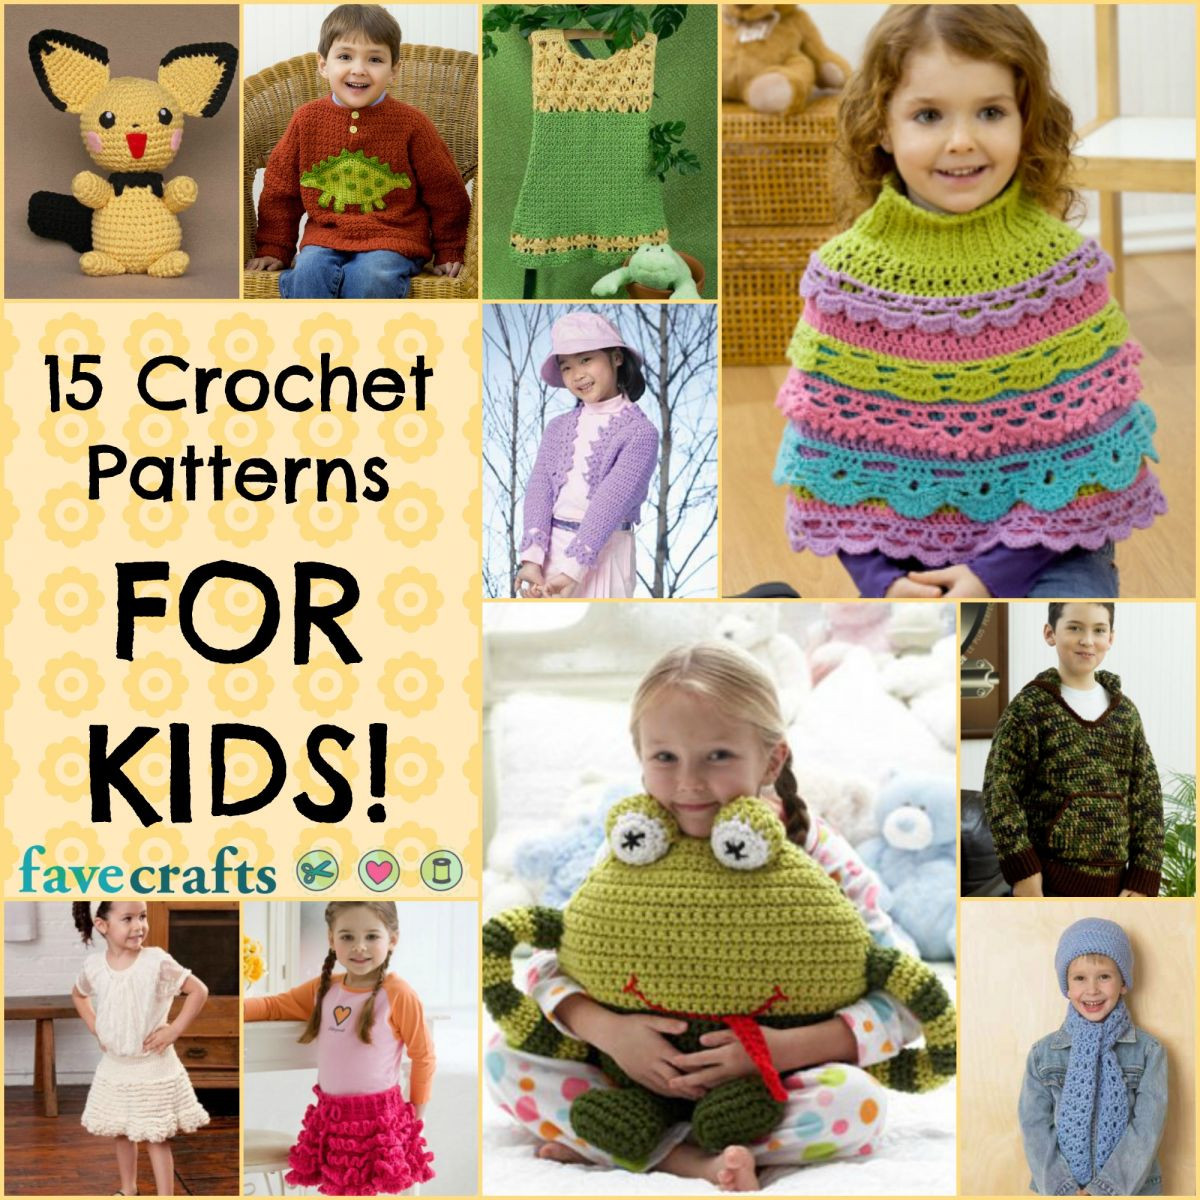 Awesome Crochet for Kids 15 Free Crochet Patterns Crochet Patterns for Kids Of Gorgeous 46 Photos Crochet Patterns for Kids